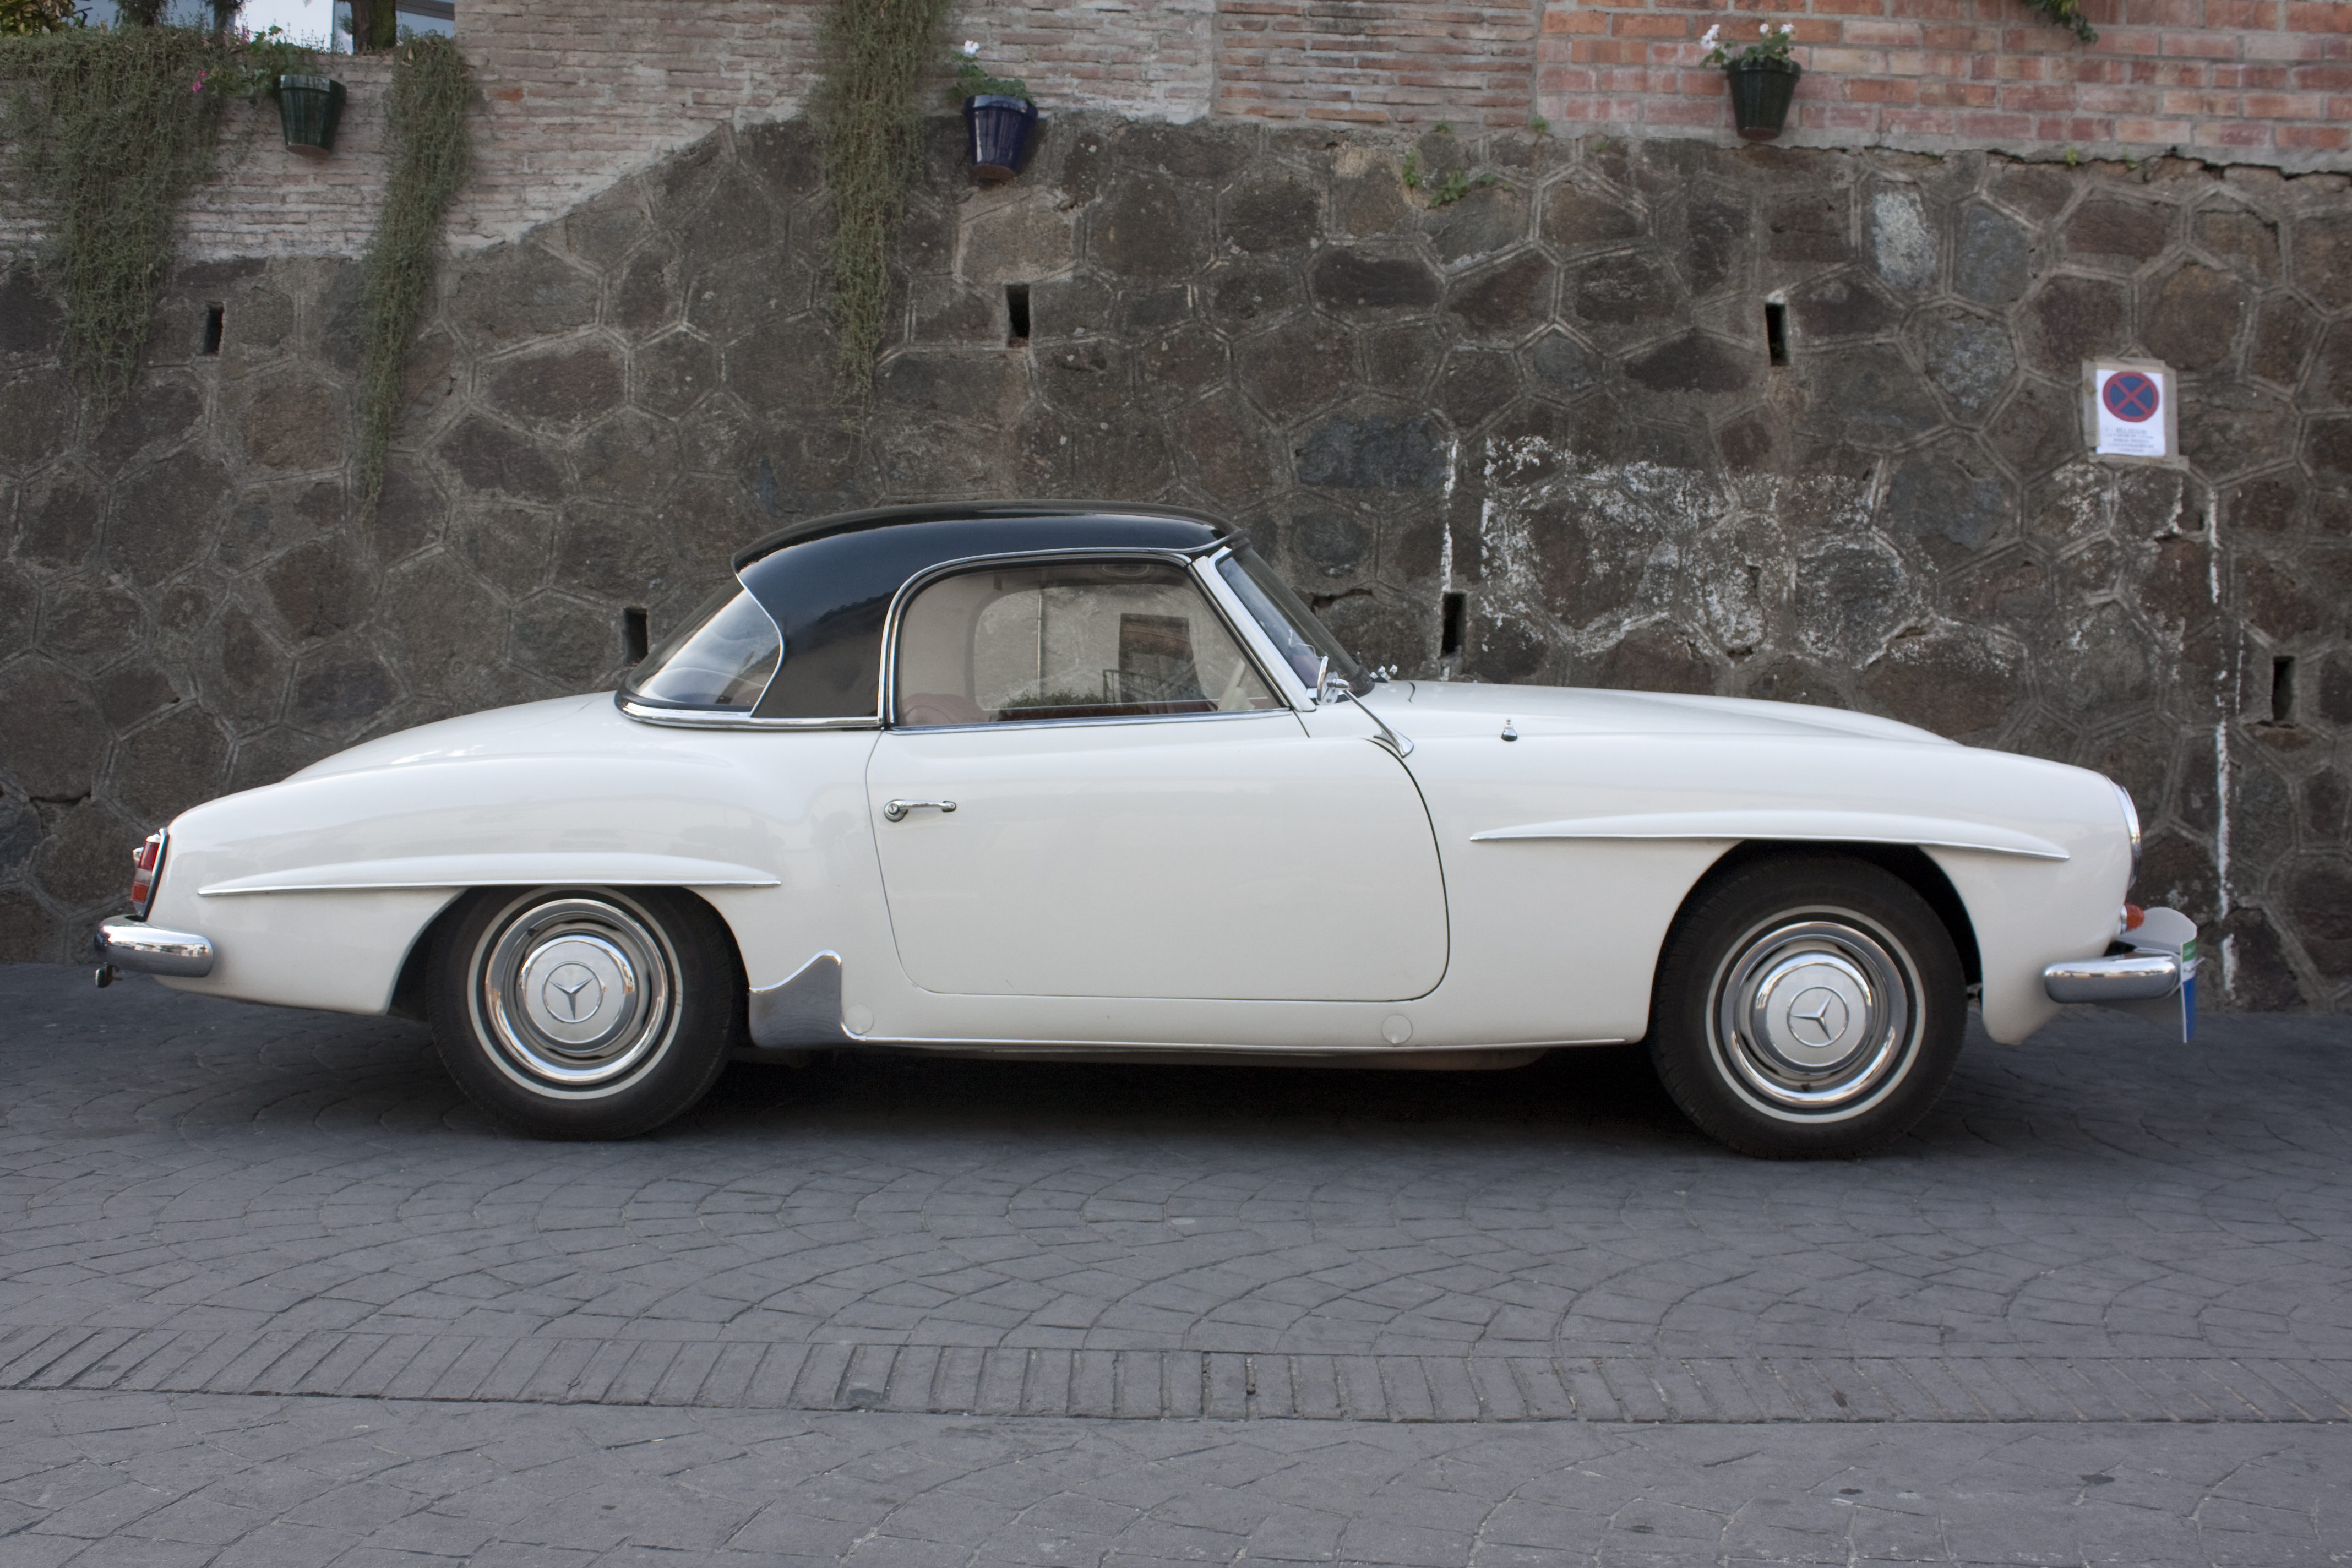 1956 mercedes benz 190 sl images pictures and videos for 1956 mercedes benz